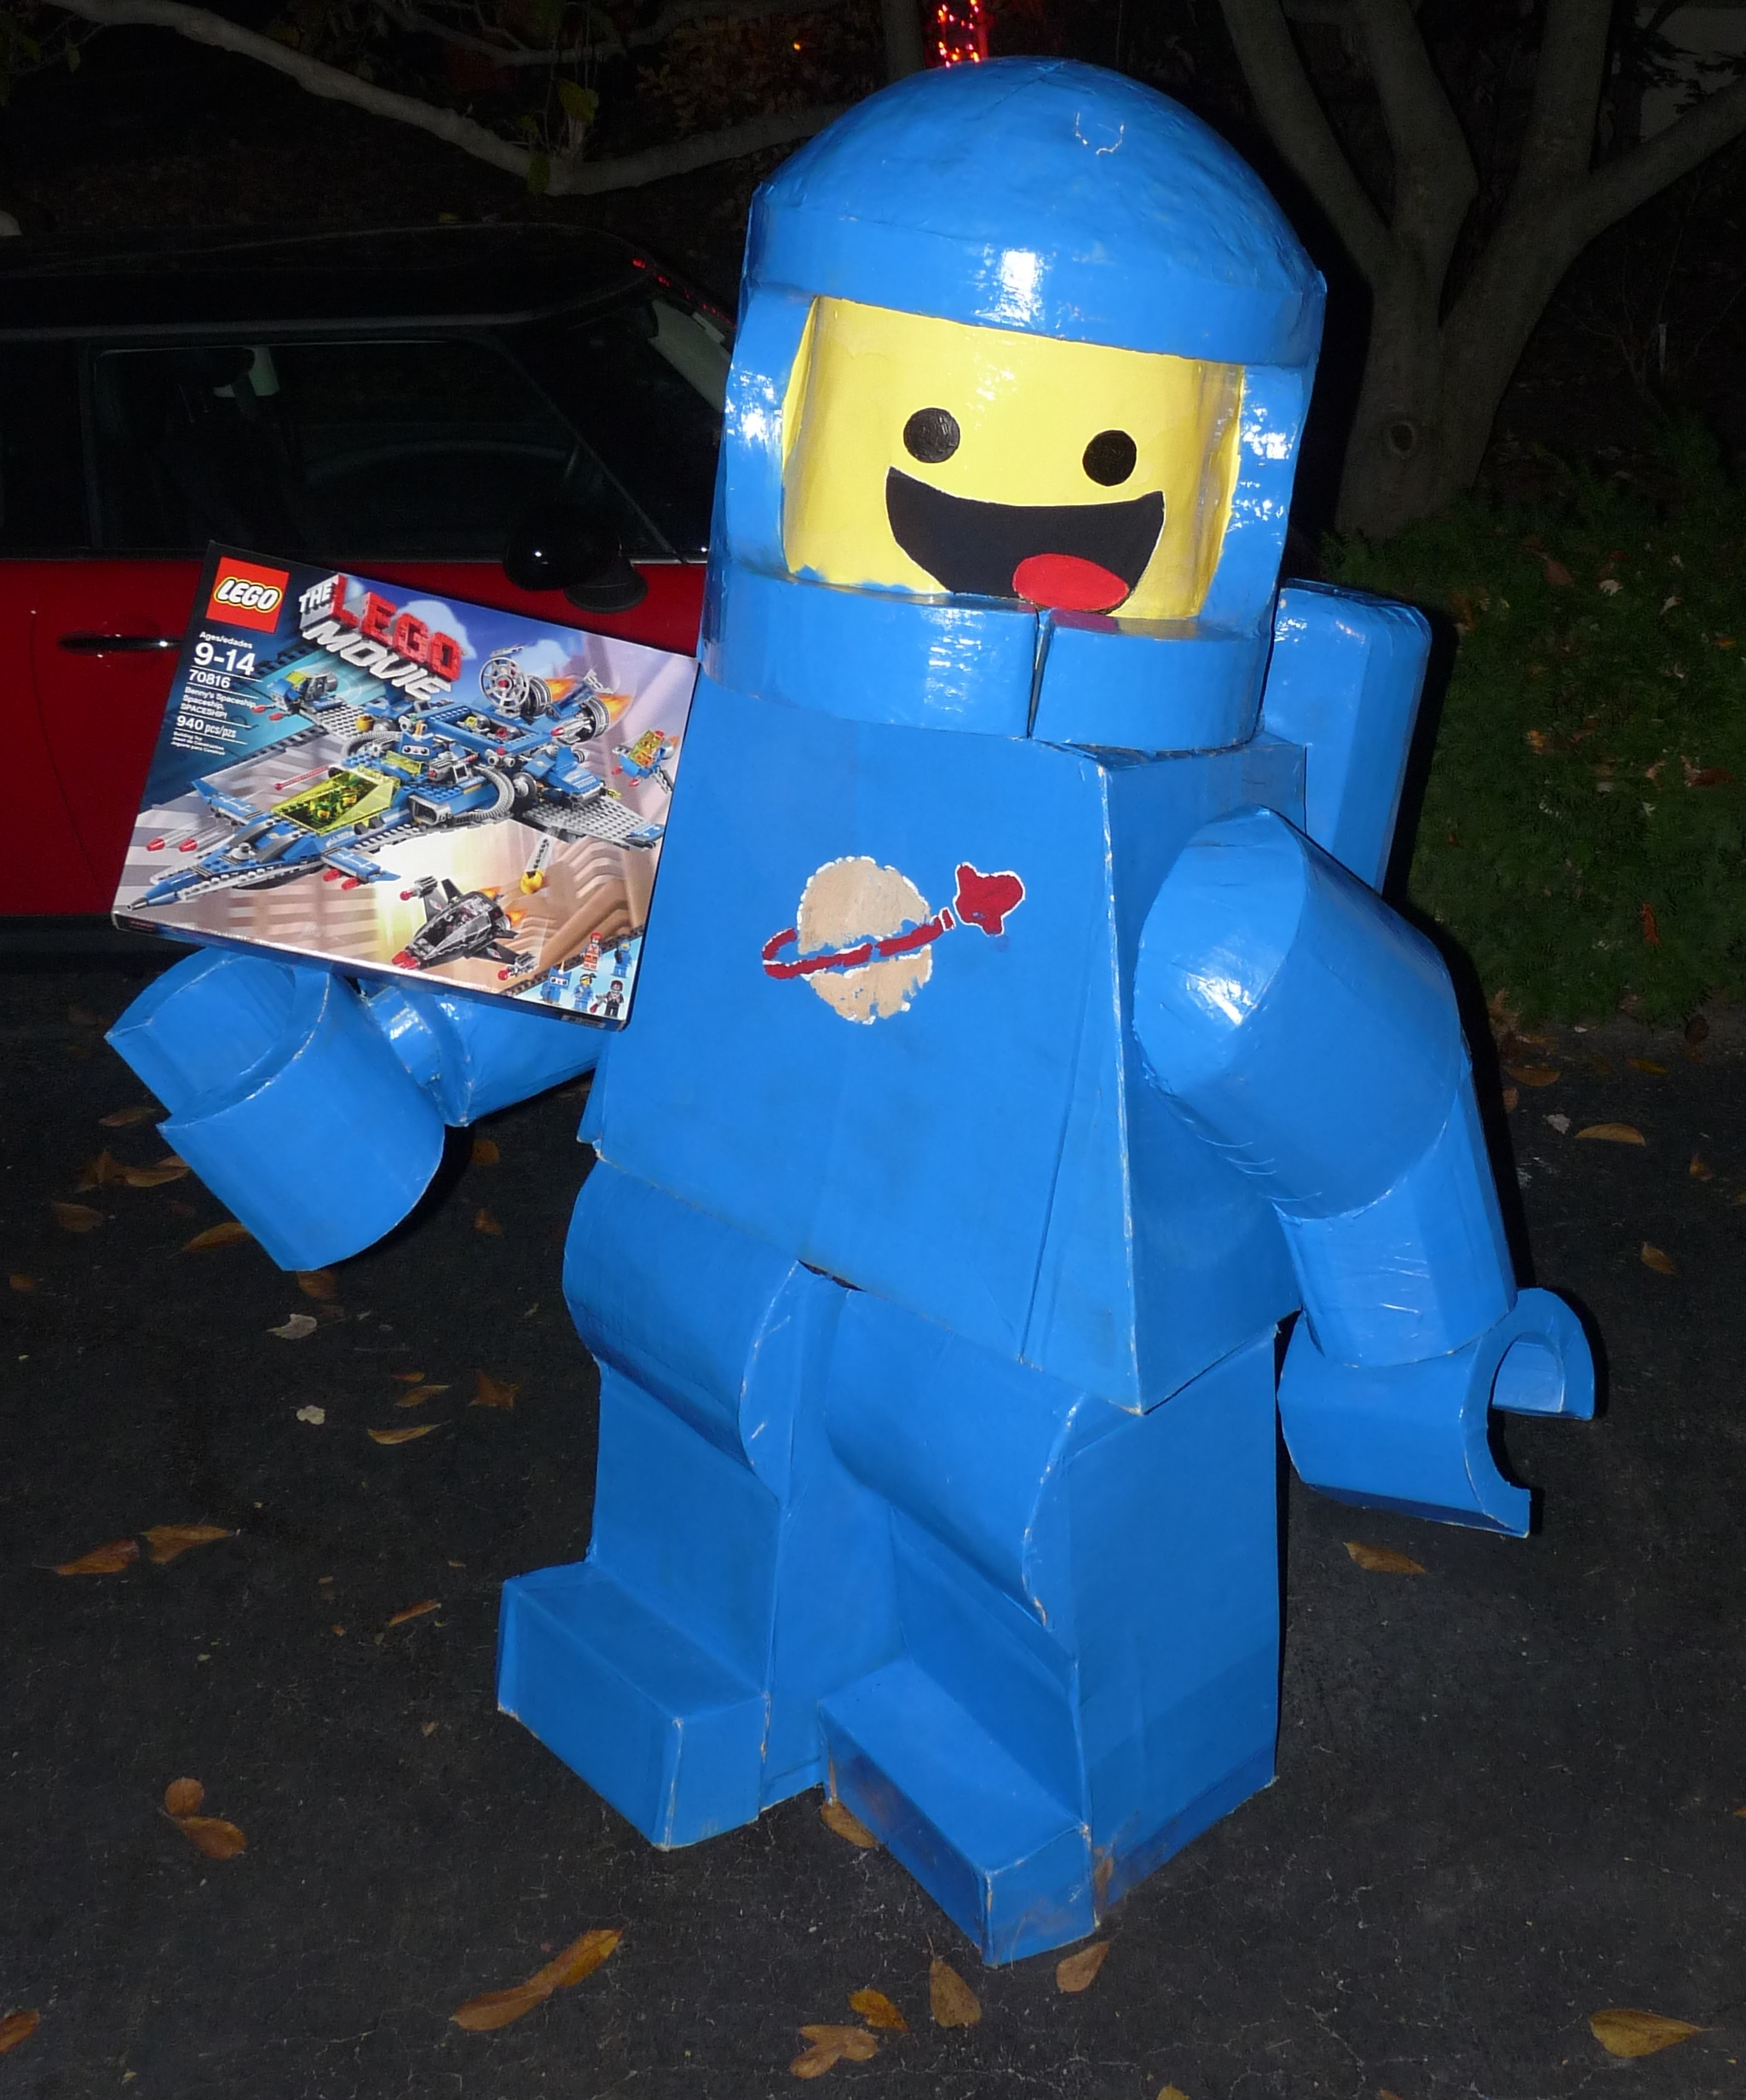 Coryn - Benny from The Lego Movie